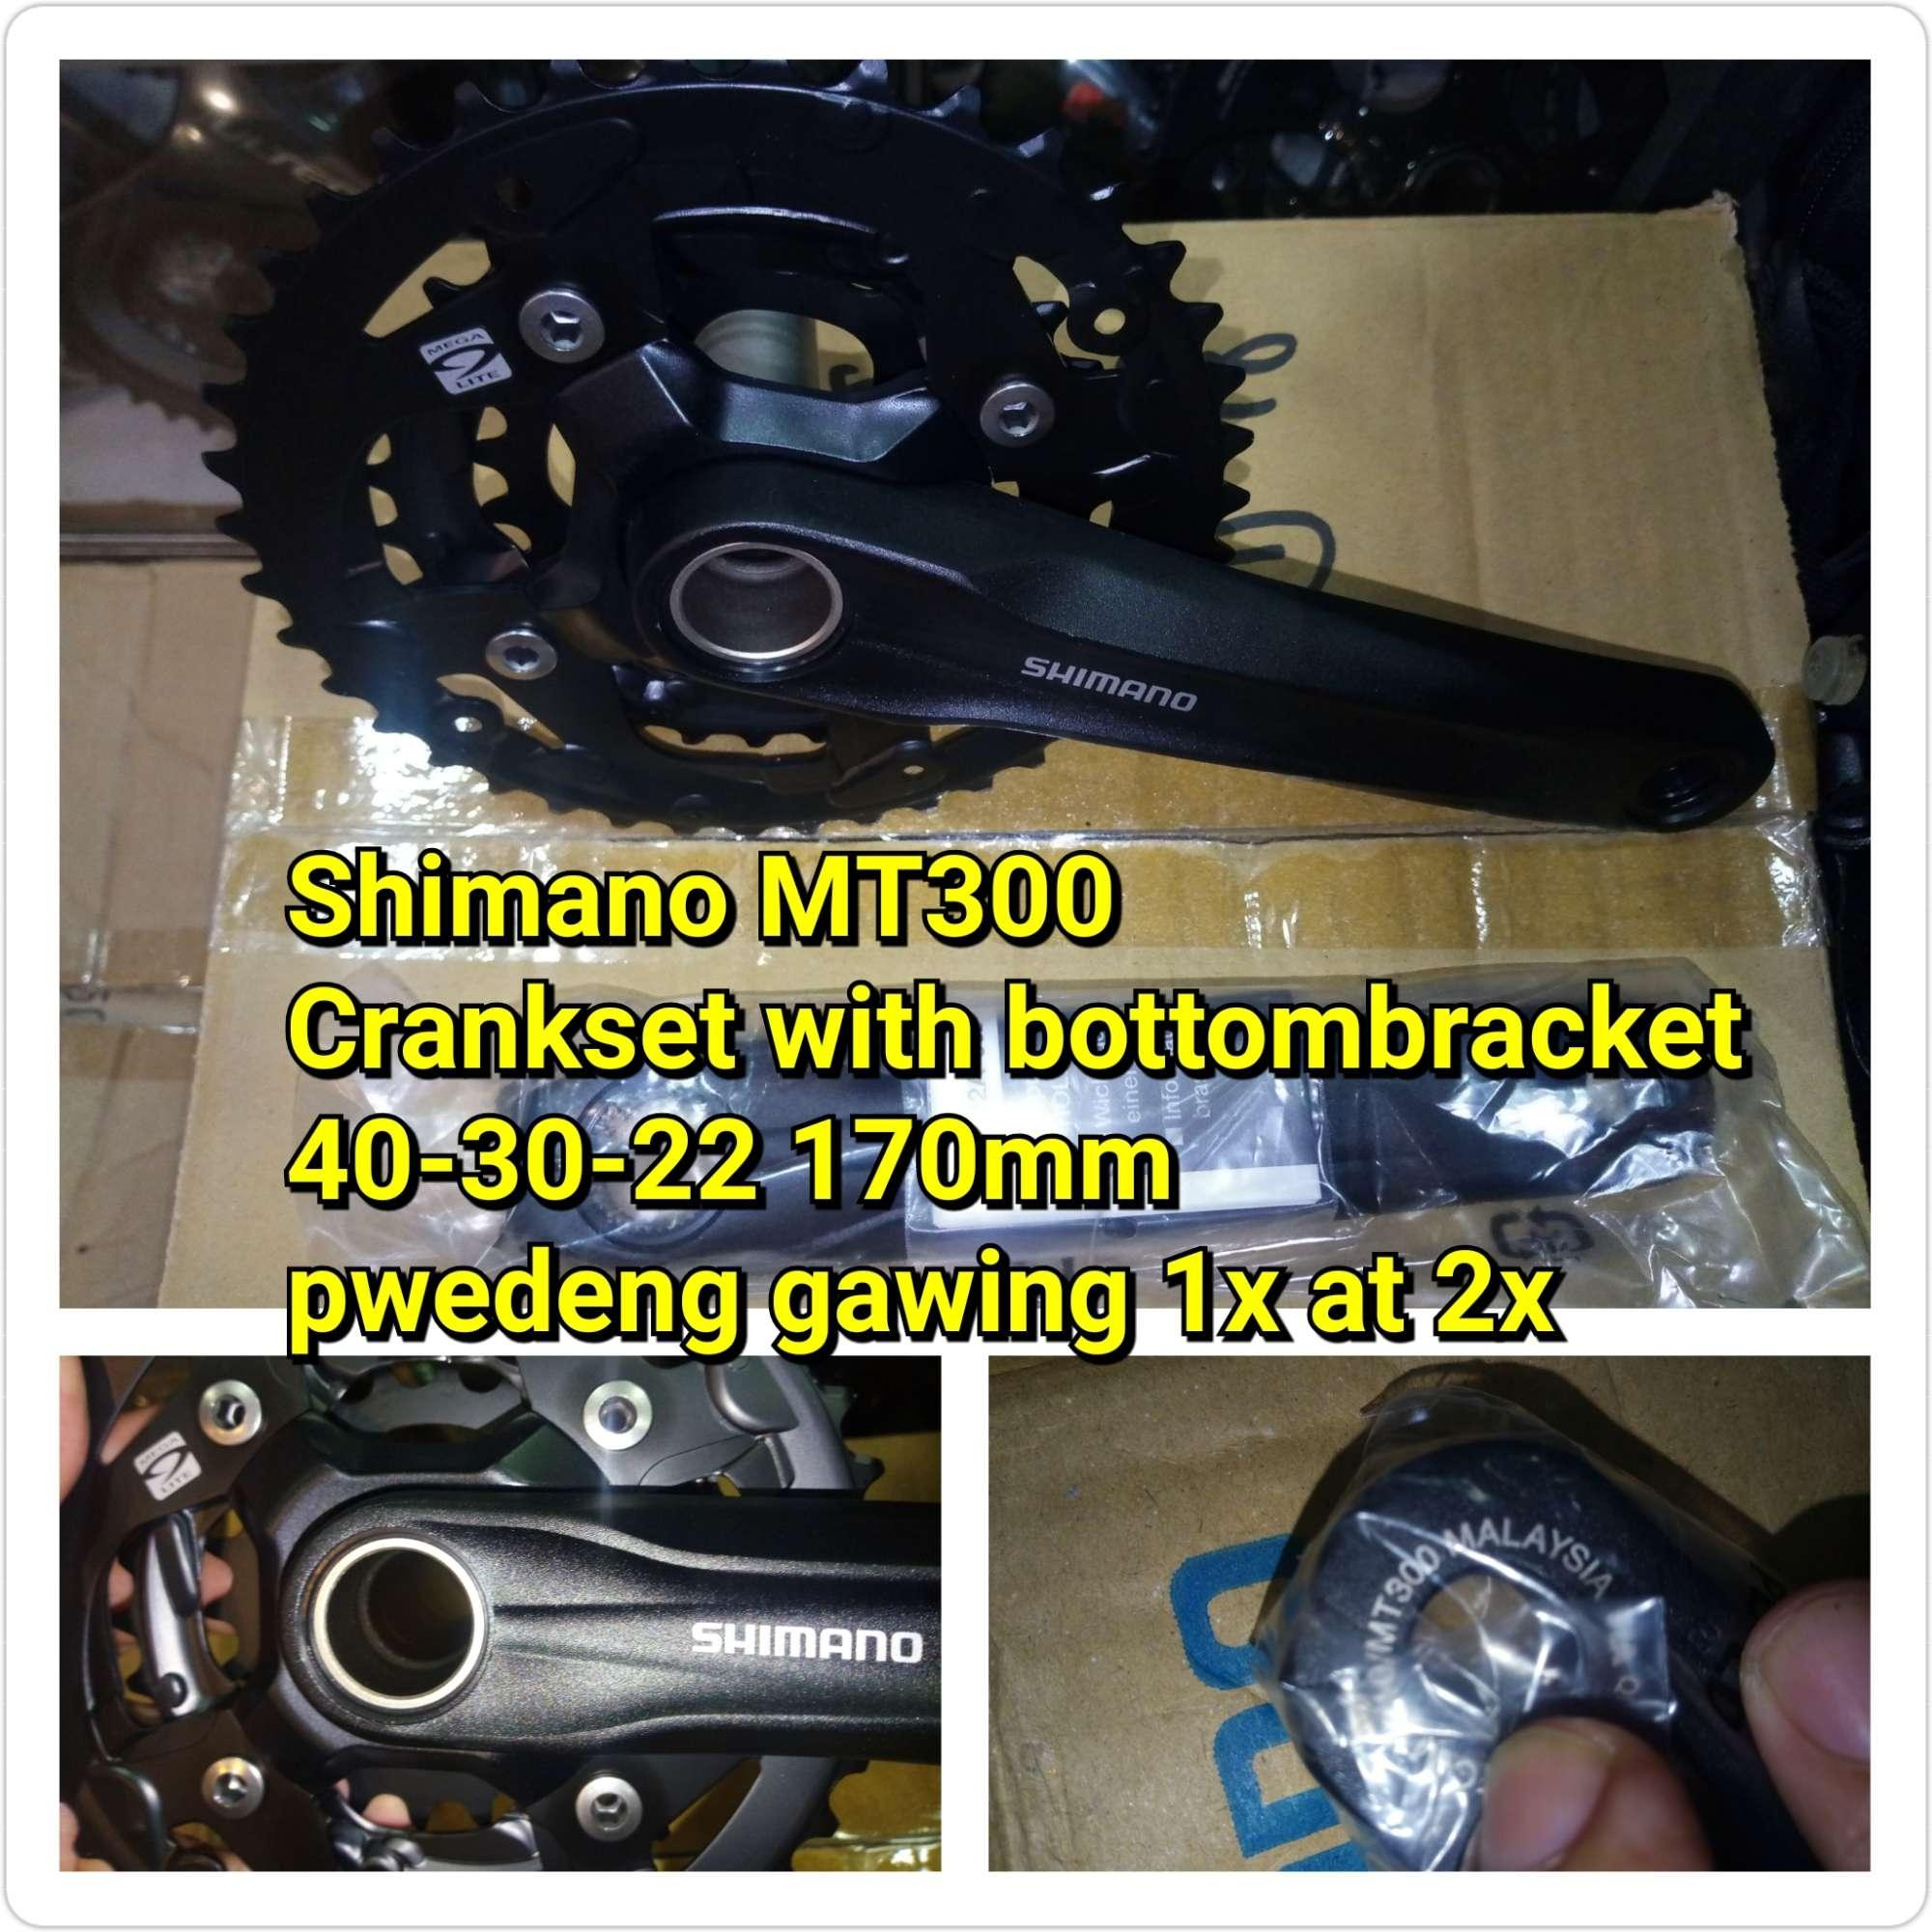 16f5367b849 Shimano Philippines - Shimano Cycling for sale - prices & reviews ...